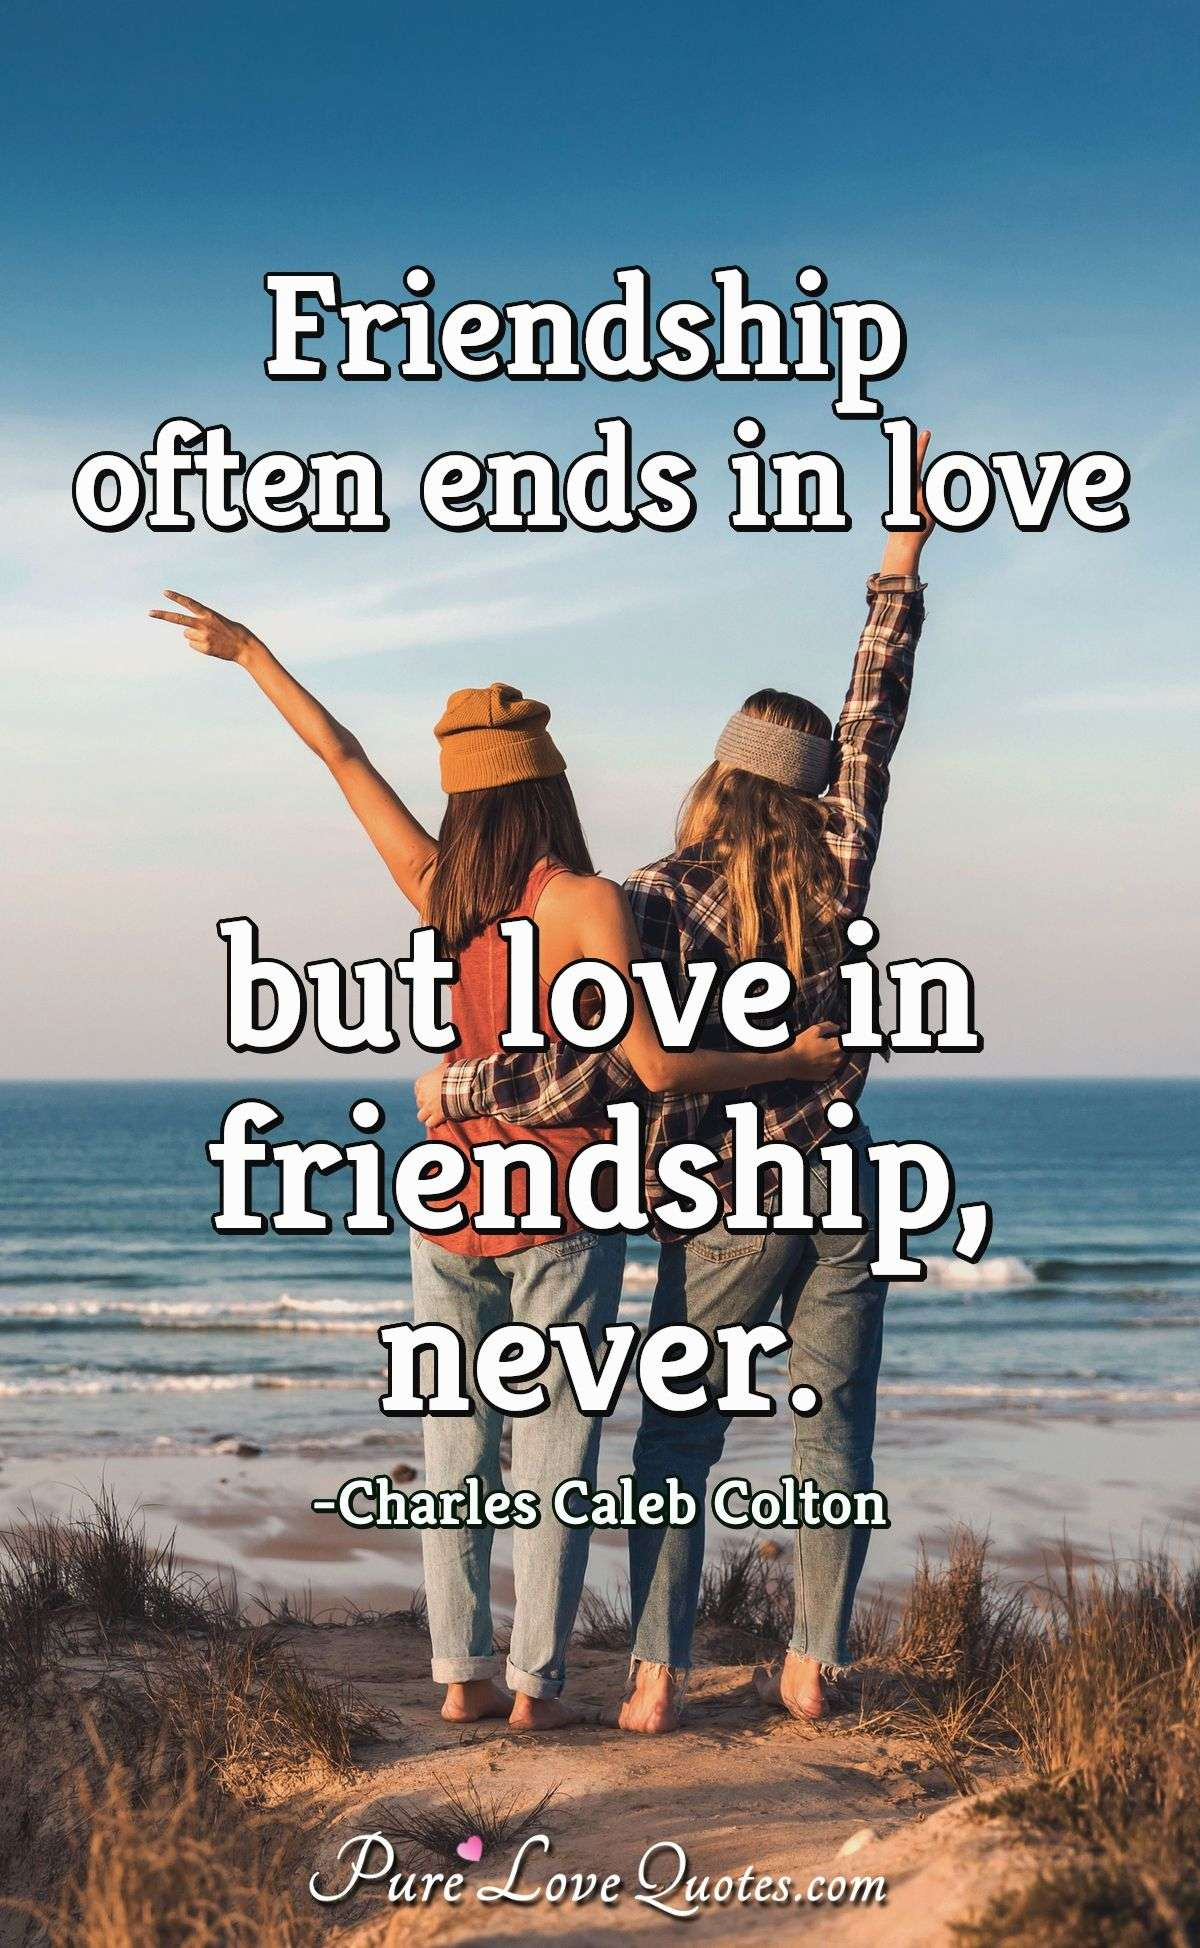 Friendship often ends in love but love in friendship, never. - Charles Caleb Colton